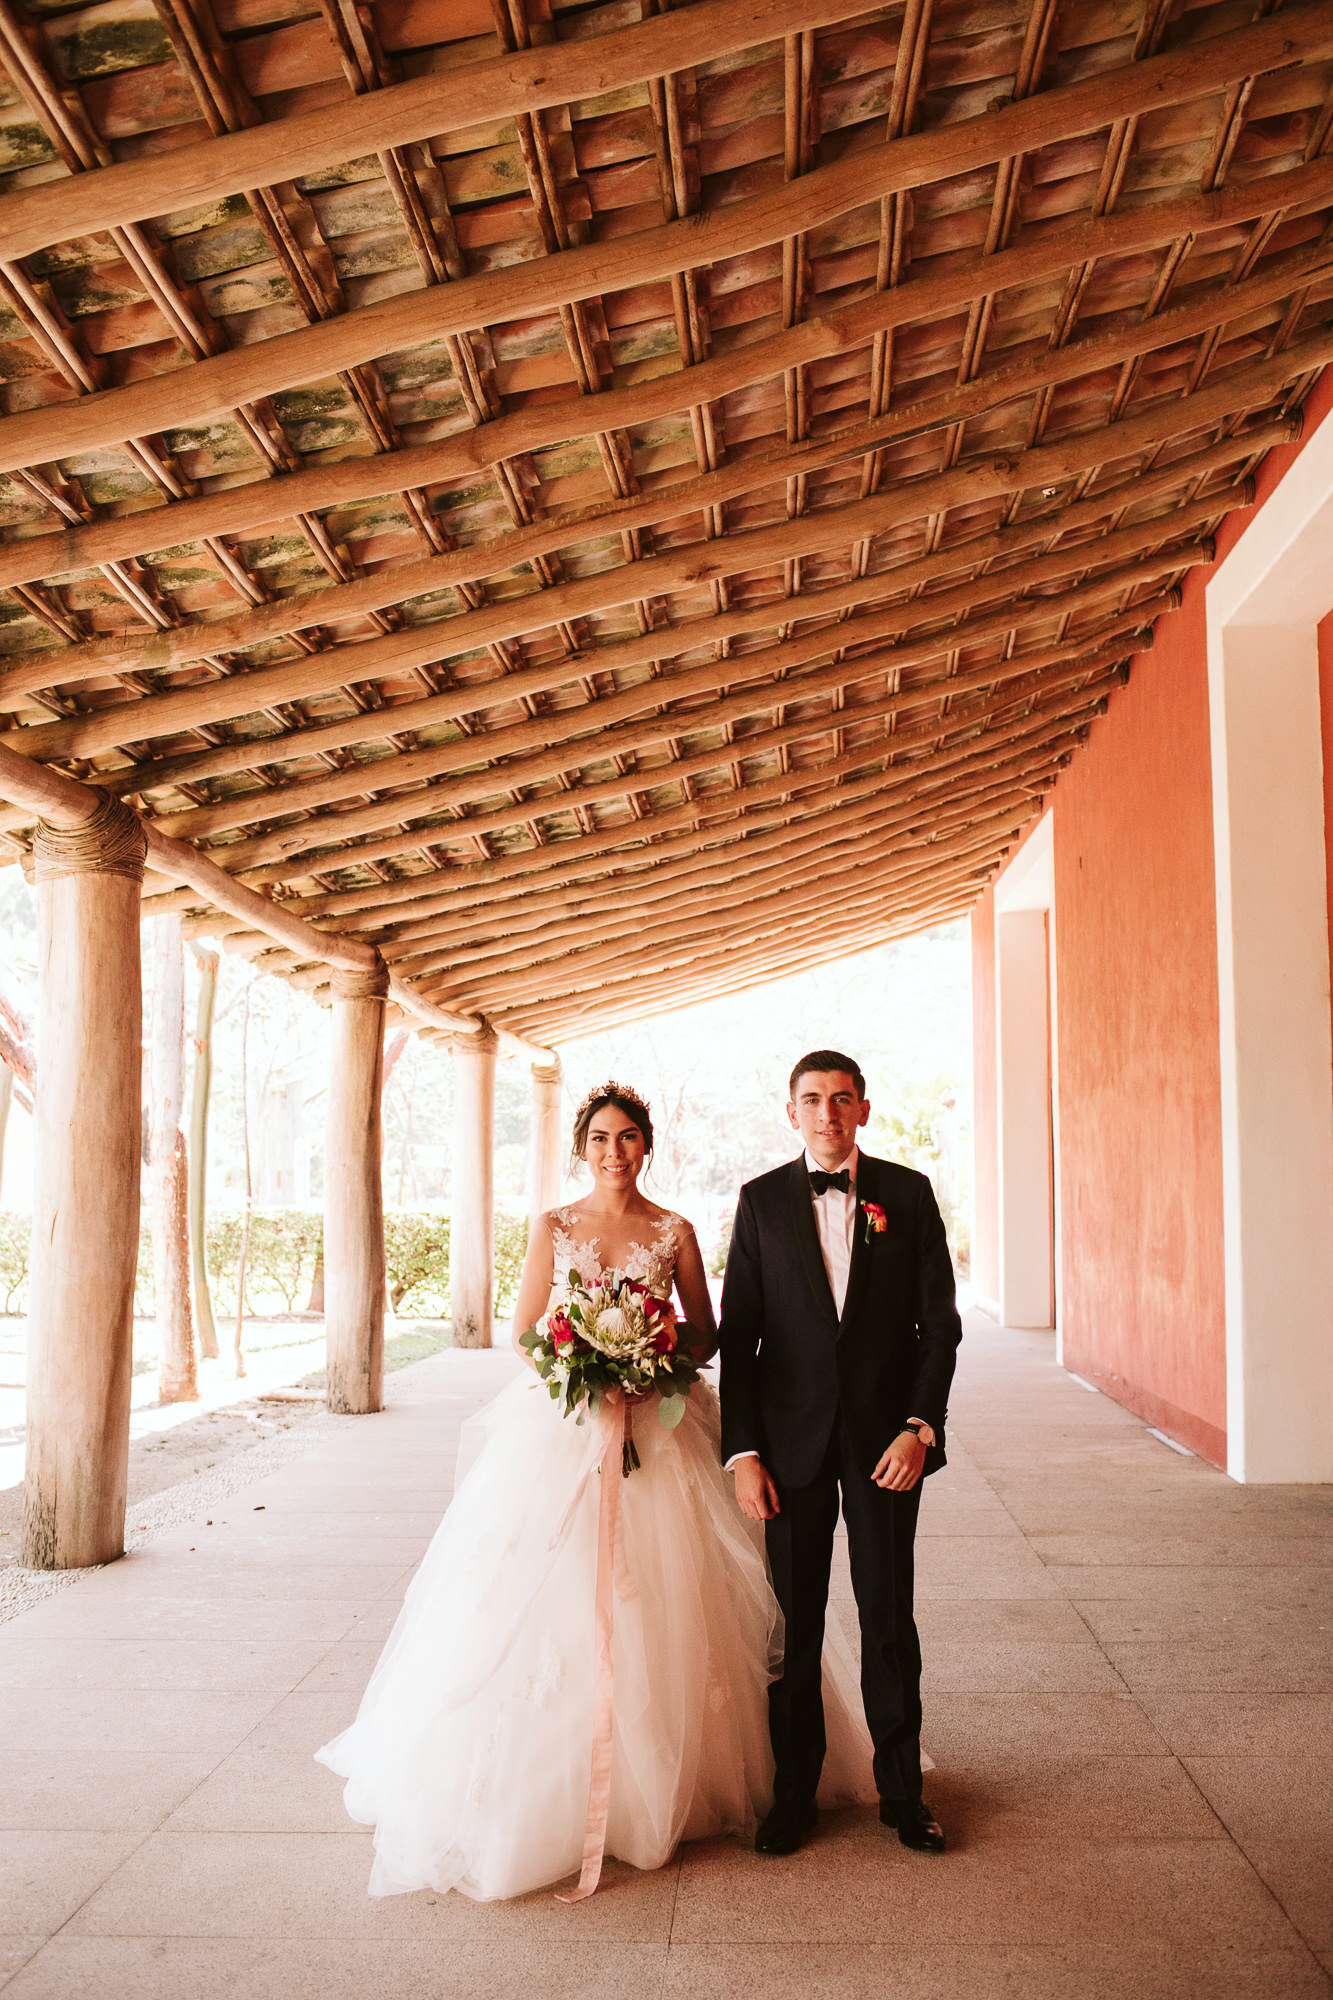 Sayulita-wedding-75.jpg